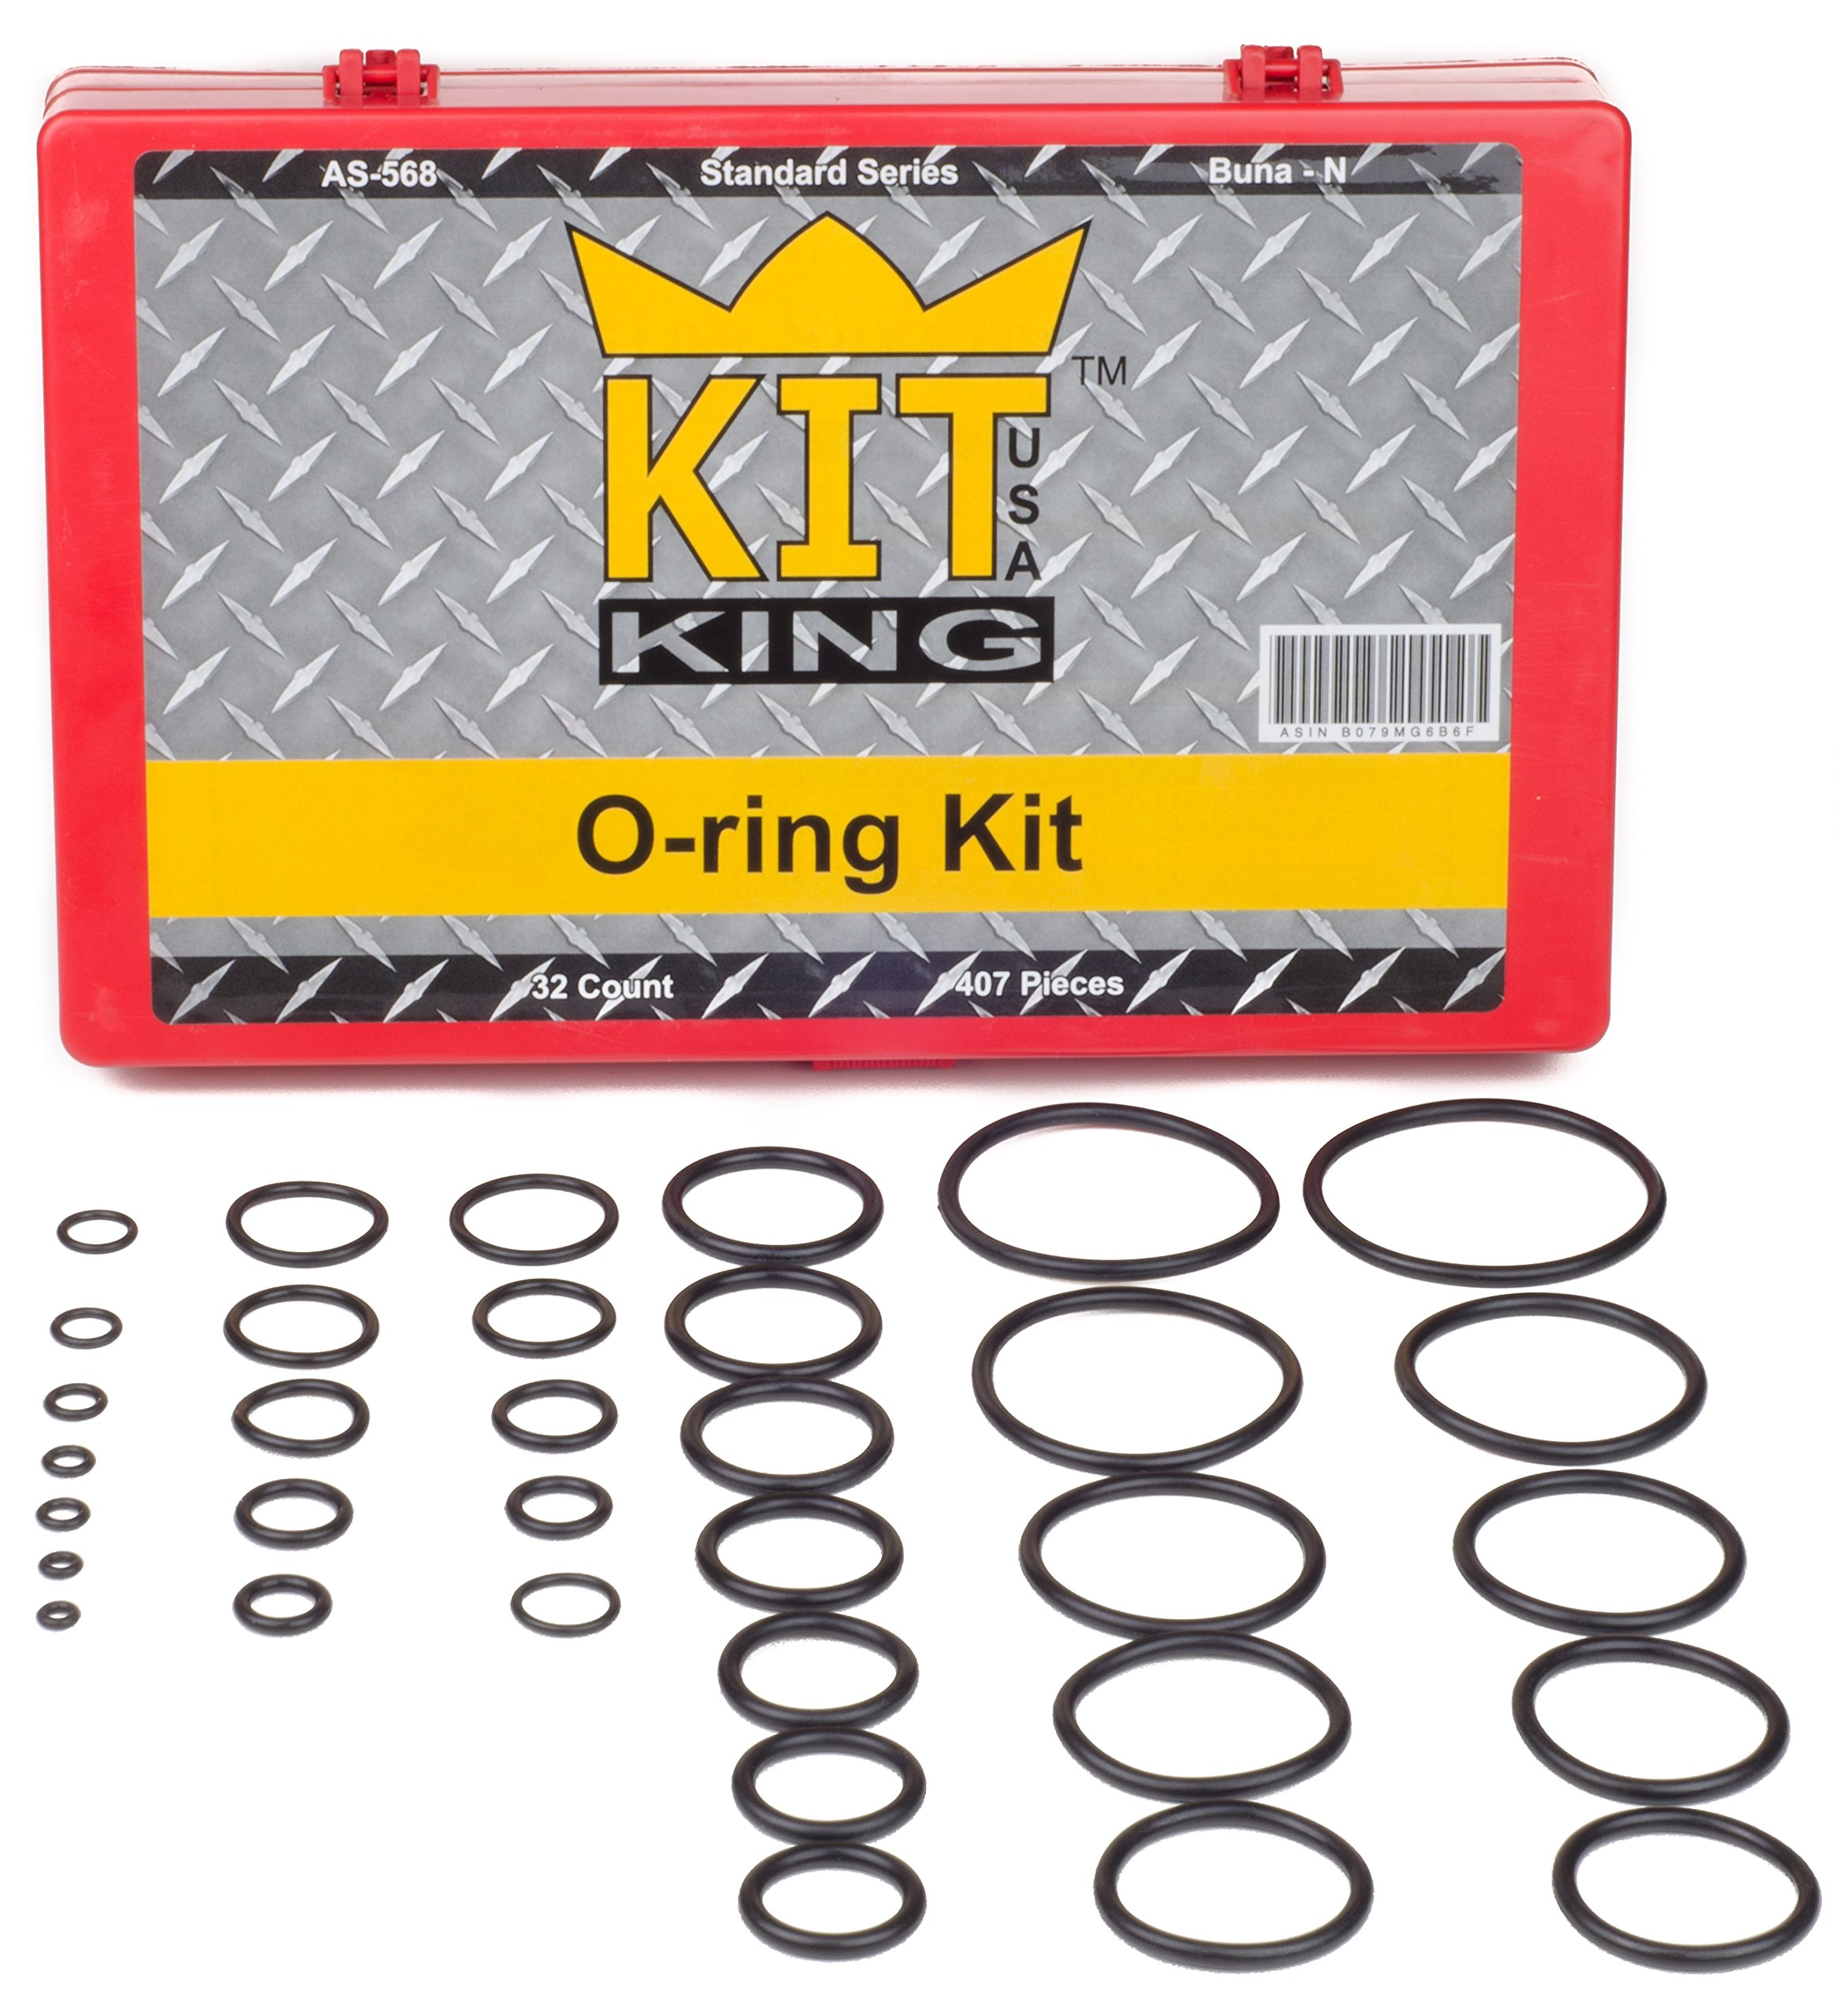 O Ring Kit Assortment Set, Assorted Buna-N, 70A Durometer, 407 Pieces, 32 O-Ring Sizes, SAE, Orings Pack